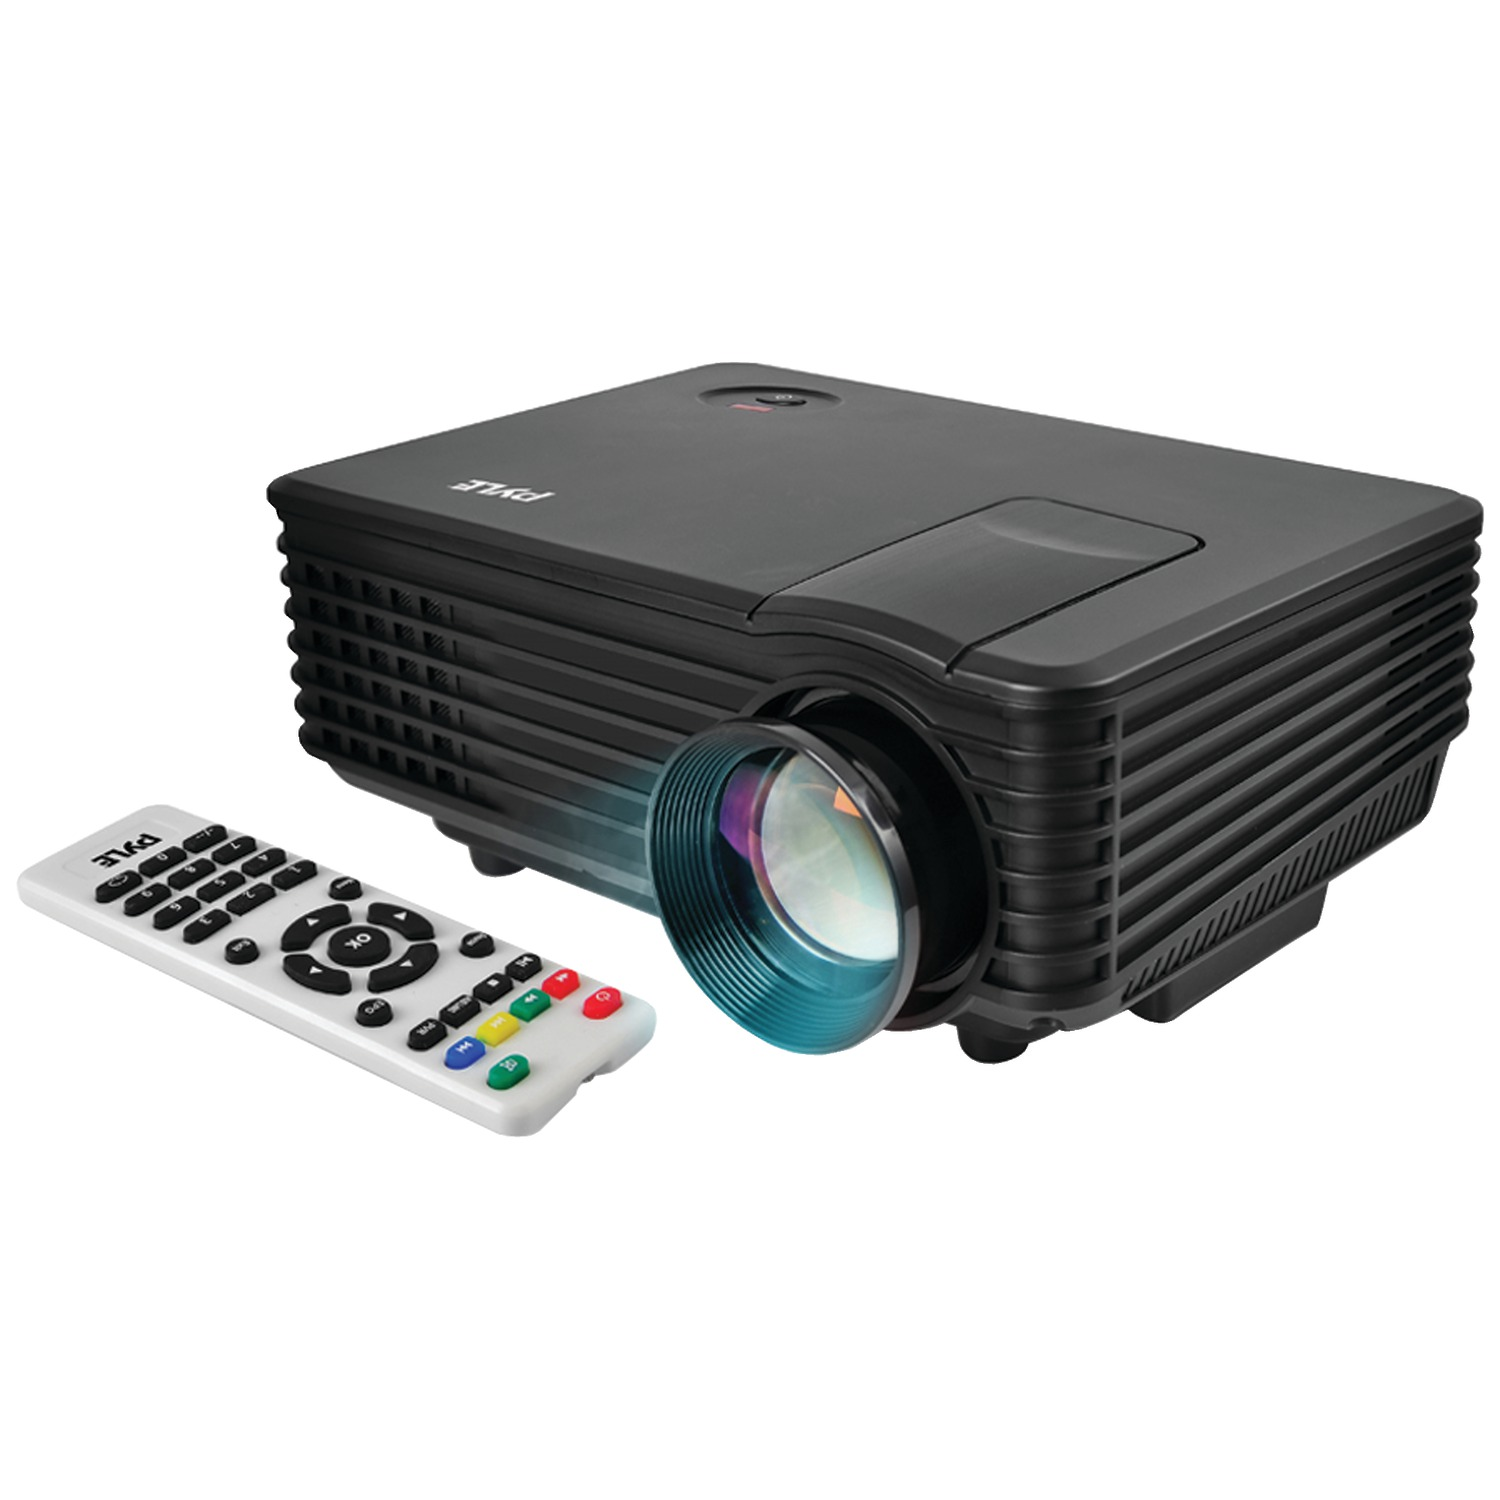 Pyle prjg88 prjg88 compact 1080p multimedia projector for Compact hd projector